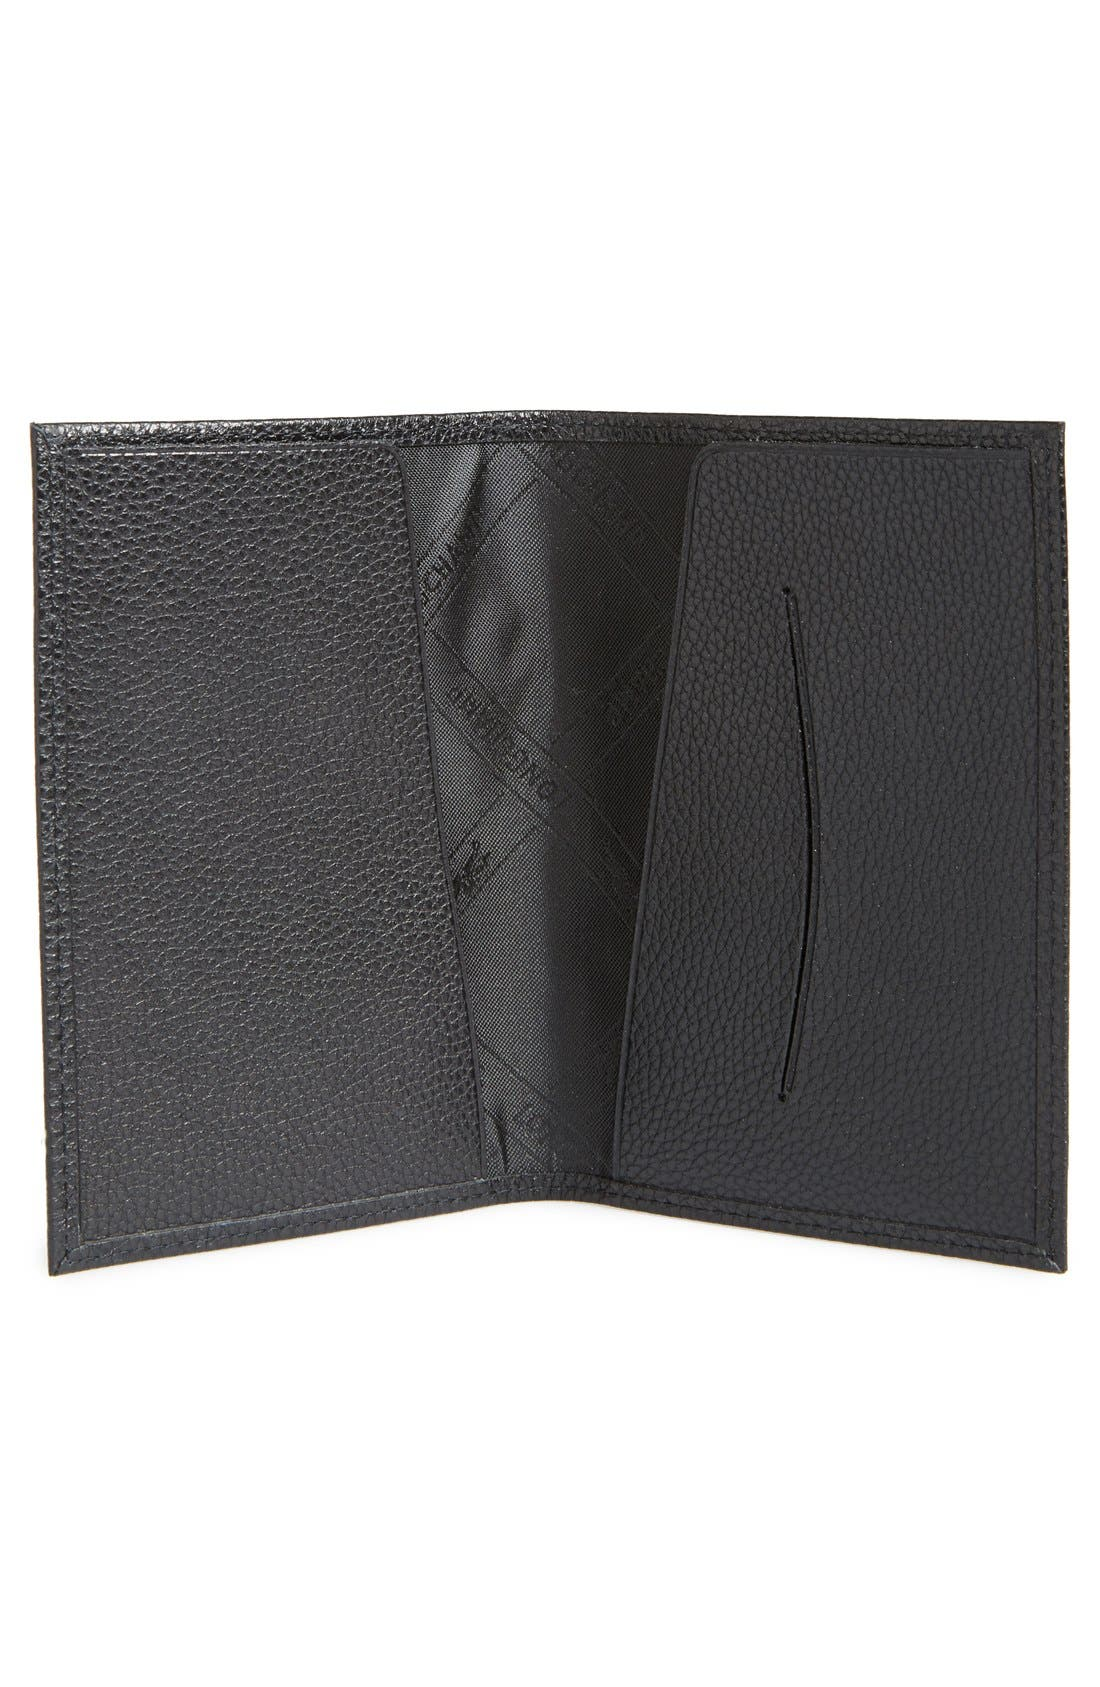 Alternate Image 3  - Longchamp Calfskin Leather Passport Case